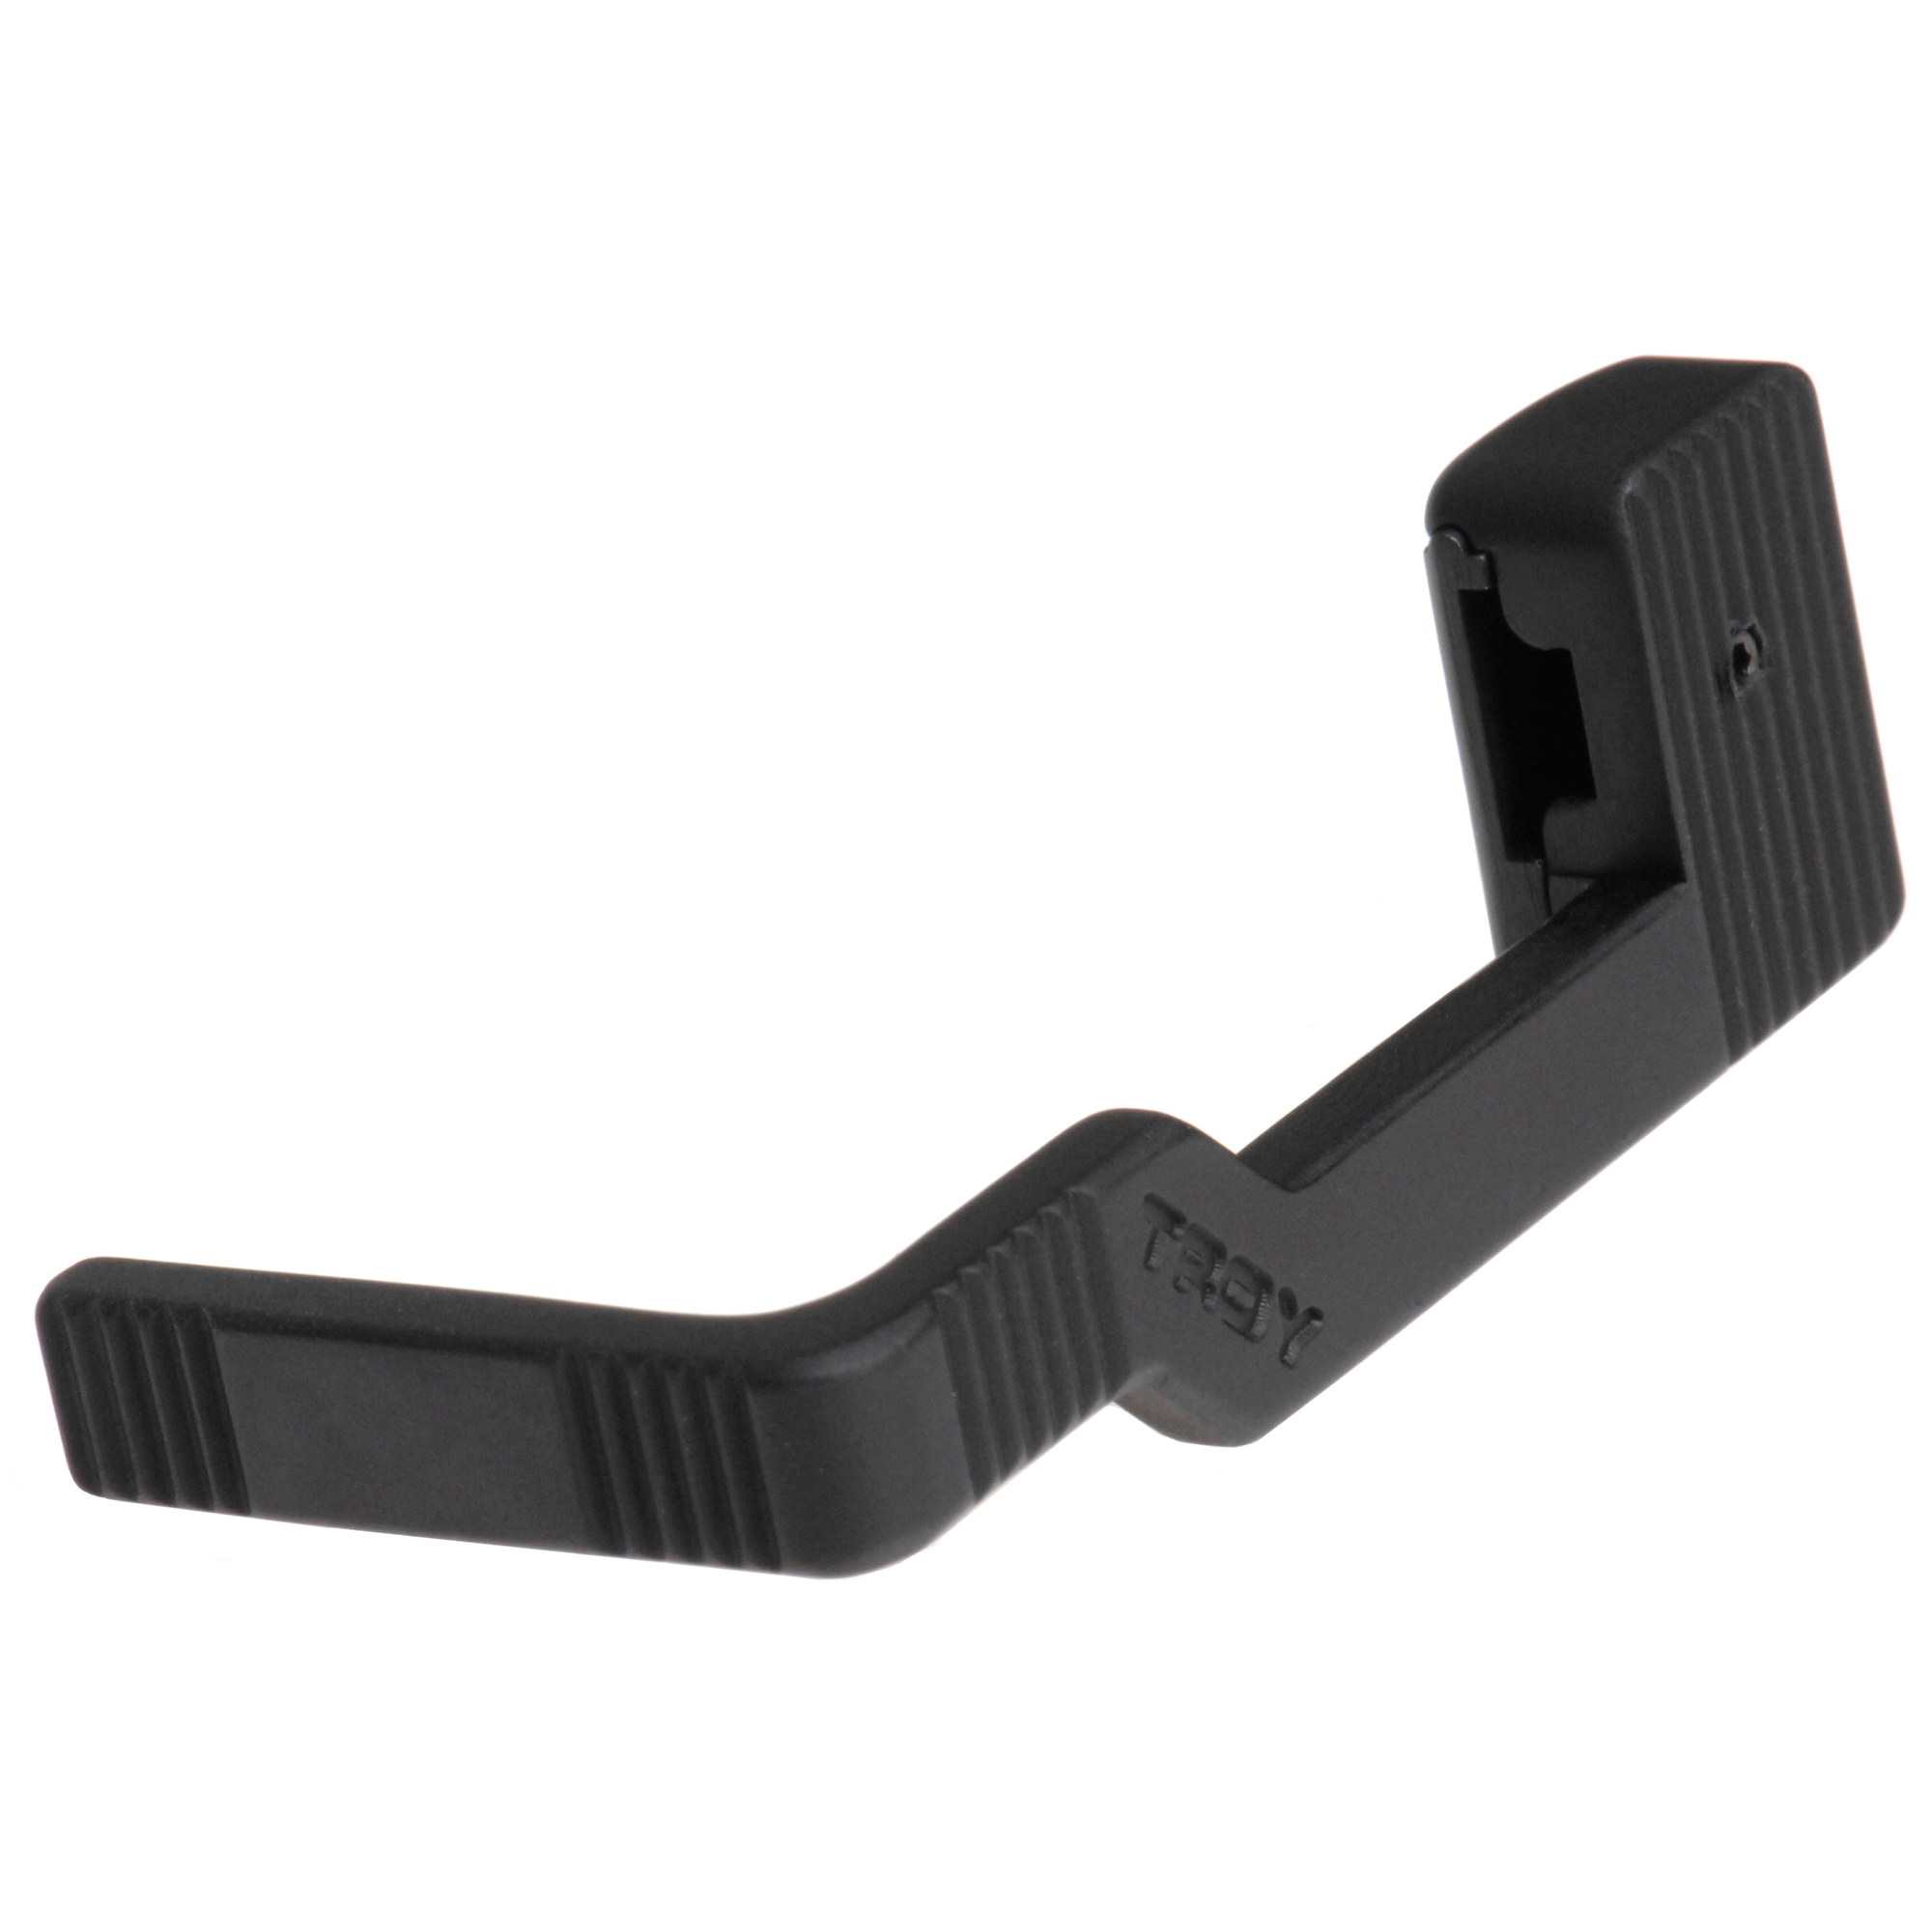 """The Ambidextrous Bolt Release is an indispensable device that easily releases or holds bolt open with one hand to streamline firearm clearing and reloading after a malfunction. By being ambidextrous"""" this bolt release eliminates hand changeovers improving control of rifle when in use. Made from hardened aircraft aluminum."""